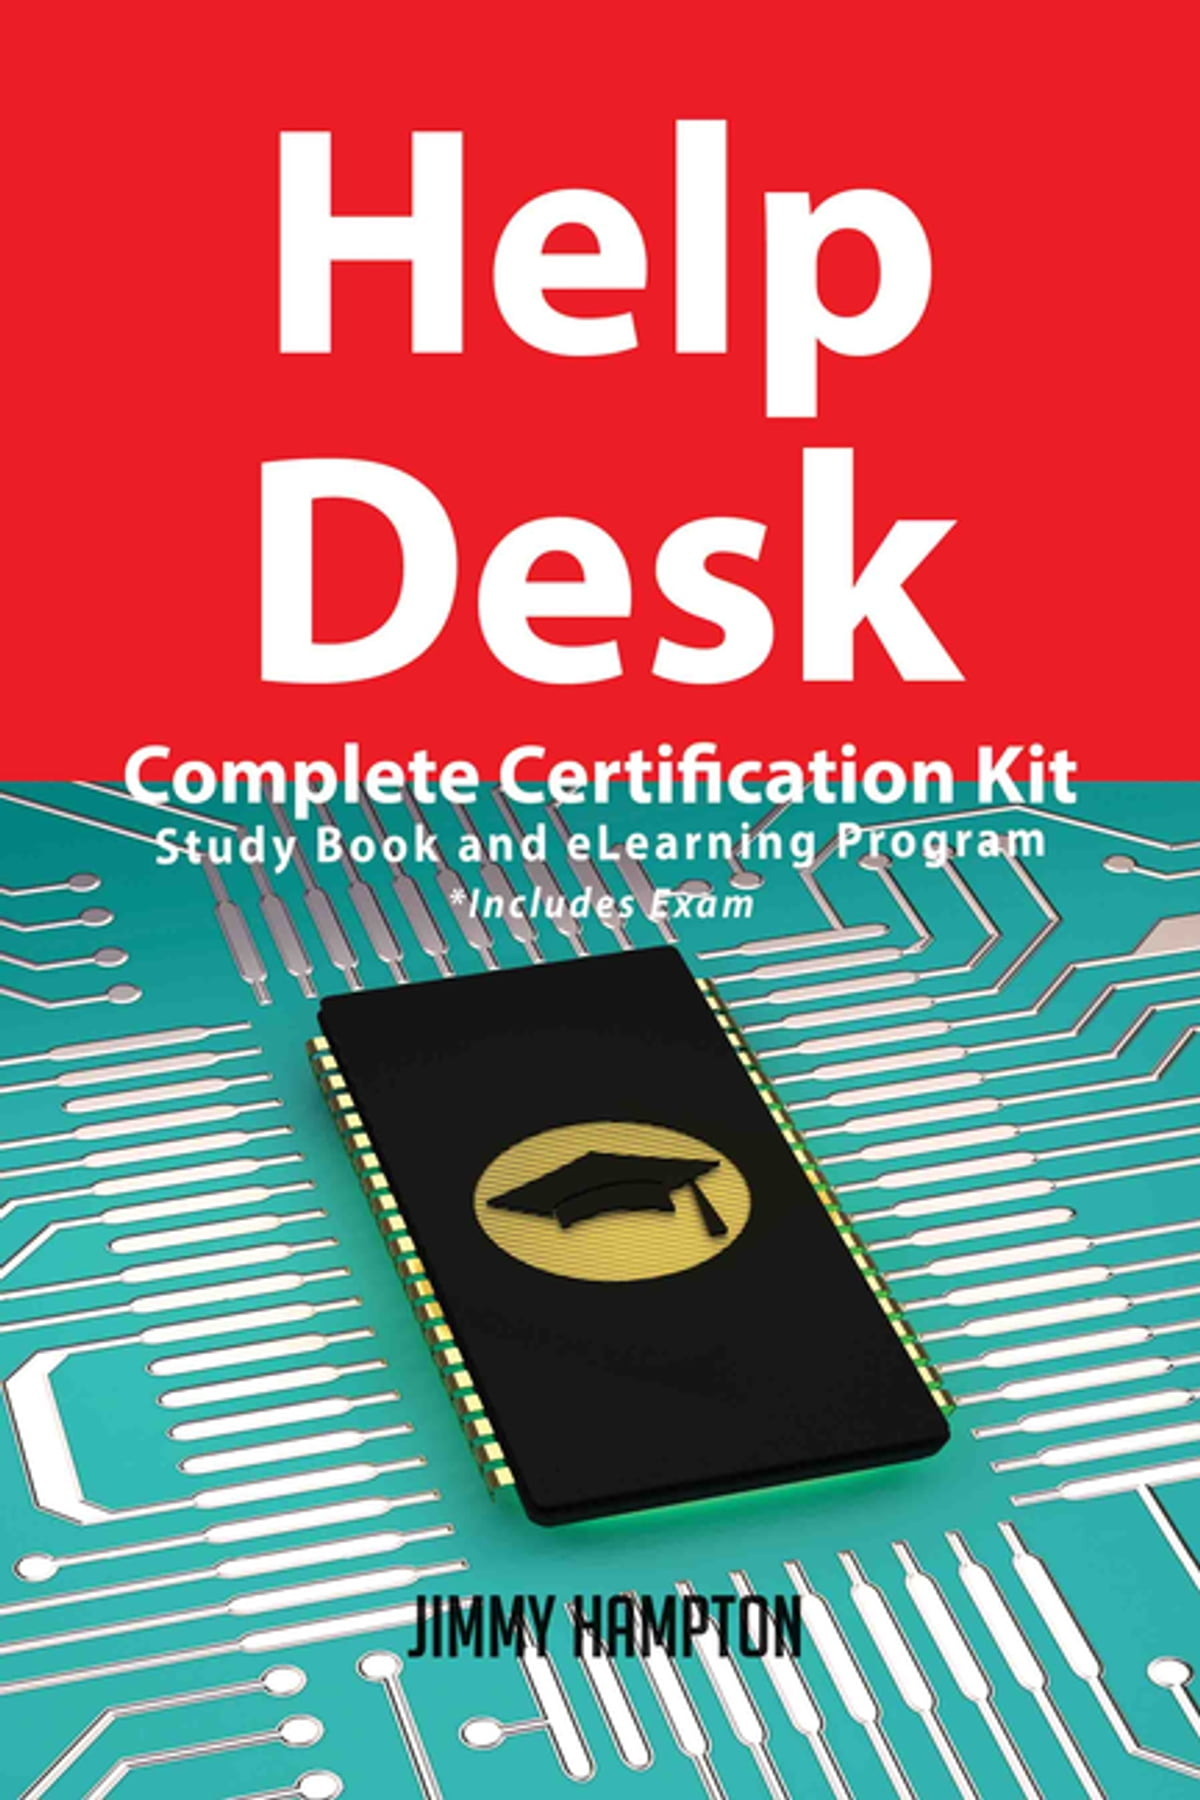 Help Desk Complete Certification Kit Study Book And Elearning